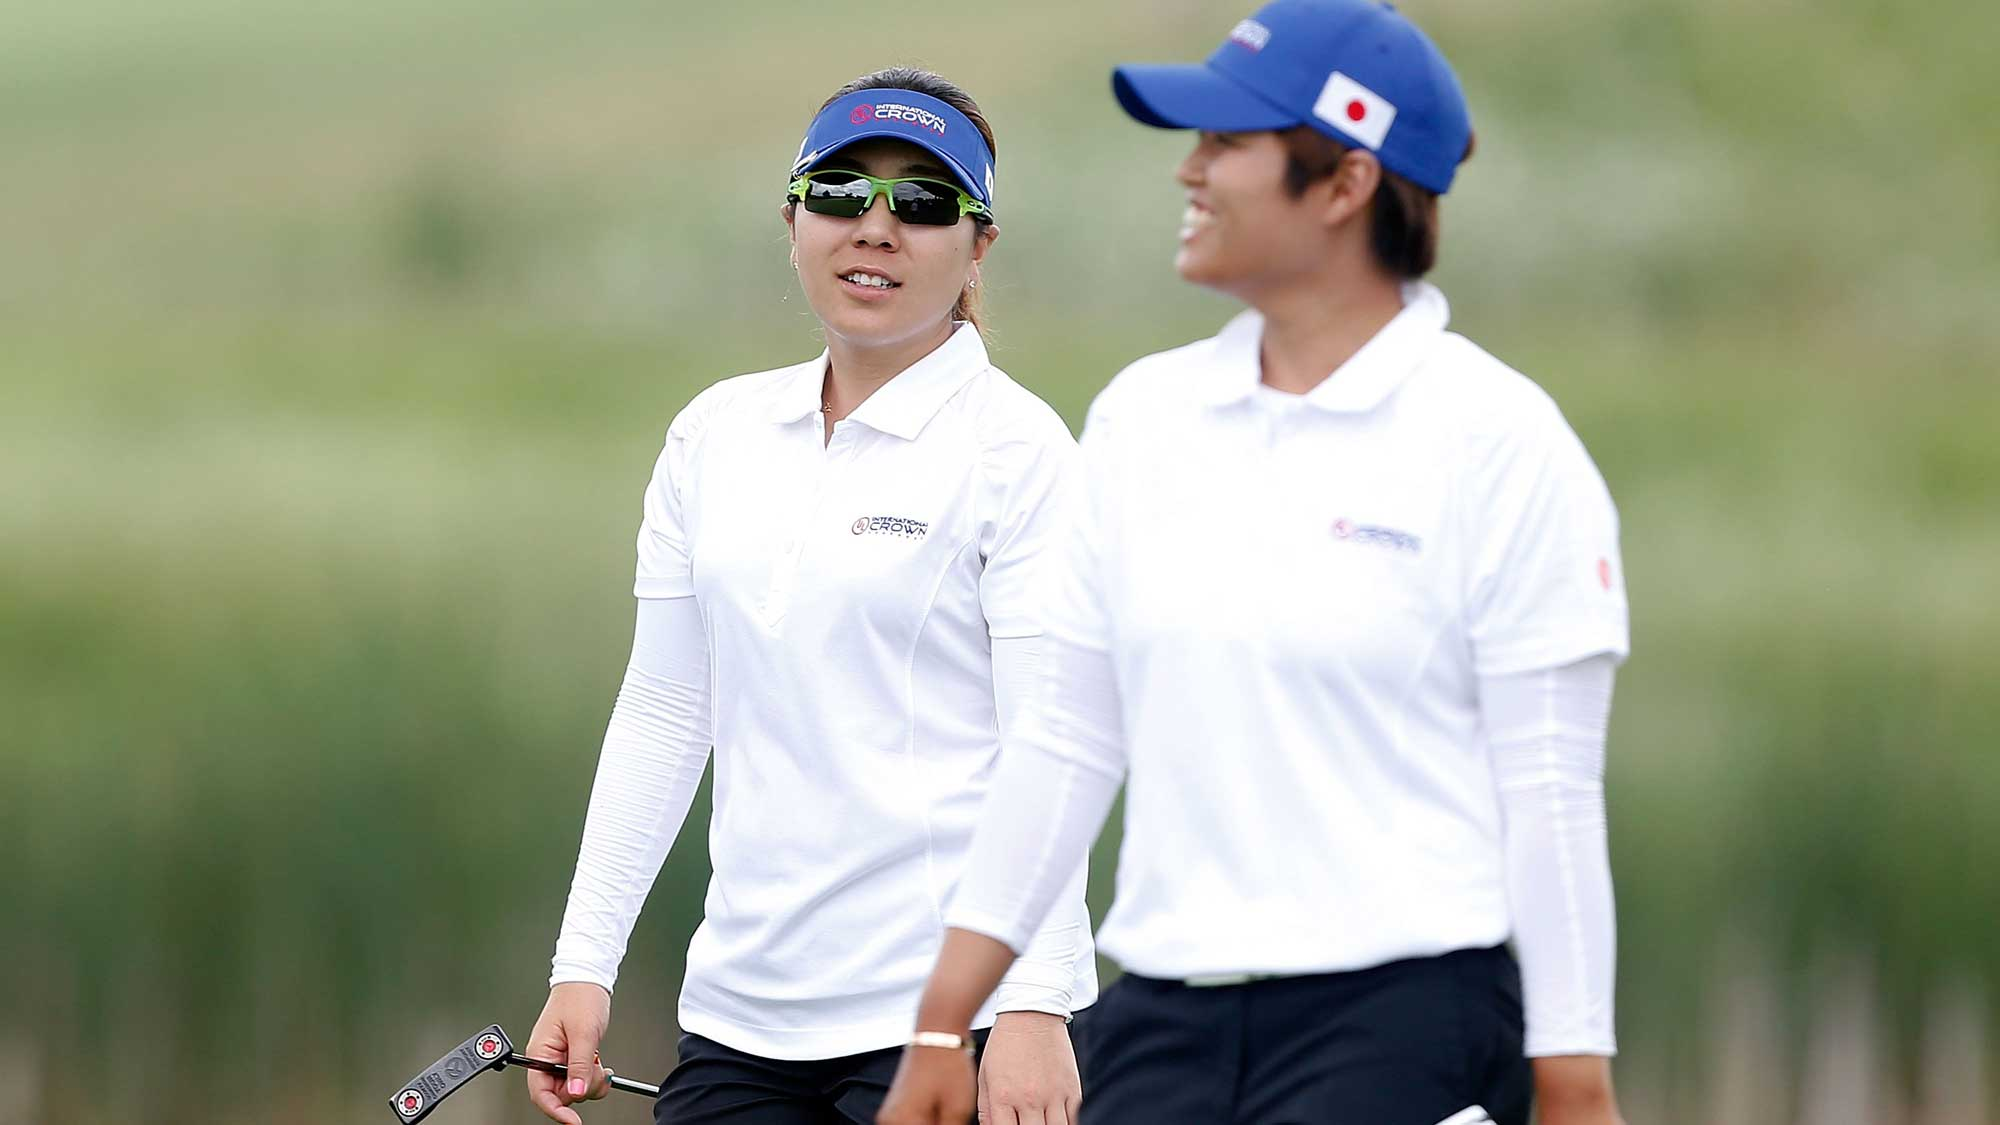 (L) Mika Miyazato and (R) Haru Nomura of Japan walk down the fourth fairway during the four-ball session of the 2016 UL International Crown